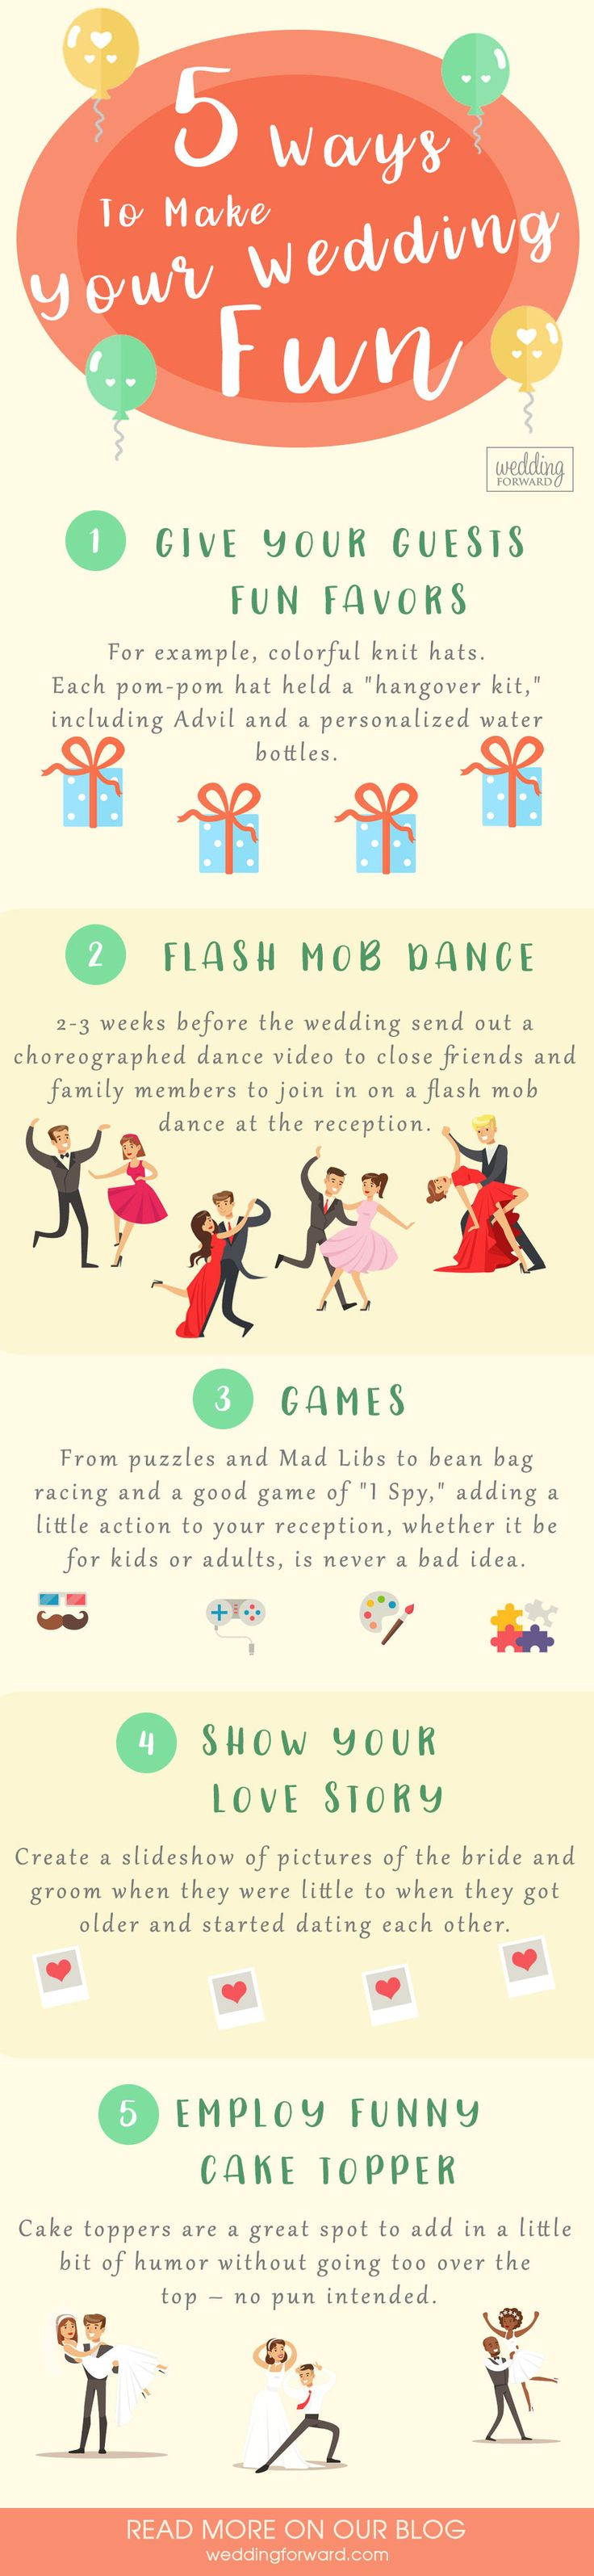 Wedding Reception Games, Ideas and Activities ❤ See more: http://www.weddingforward.com/wedding-reception-games-ideas-activities/ #weddings